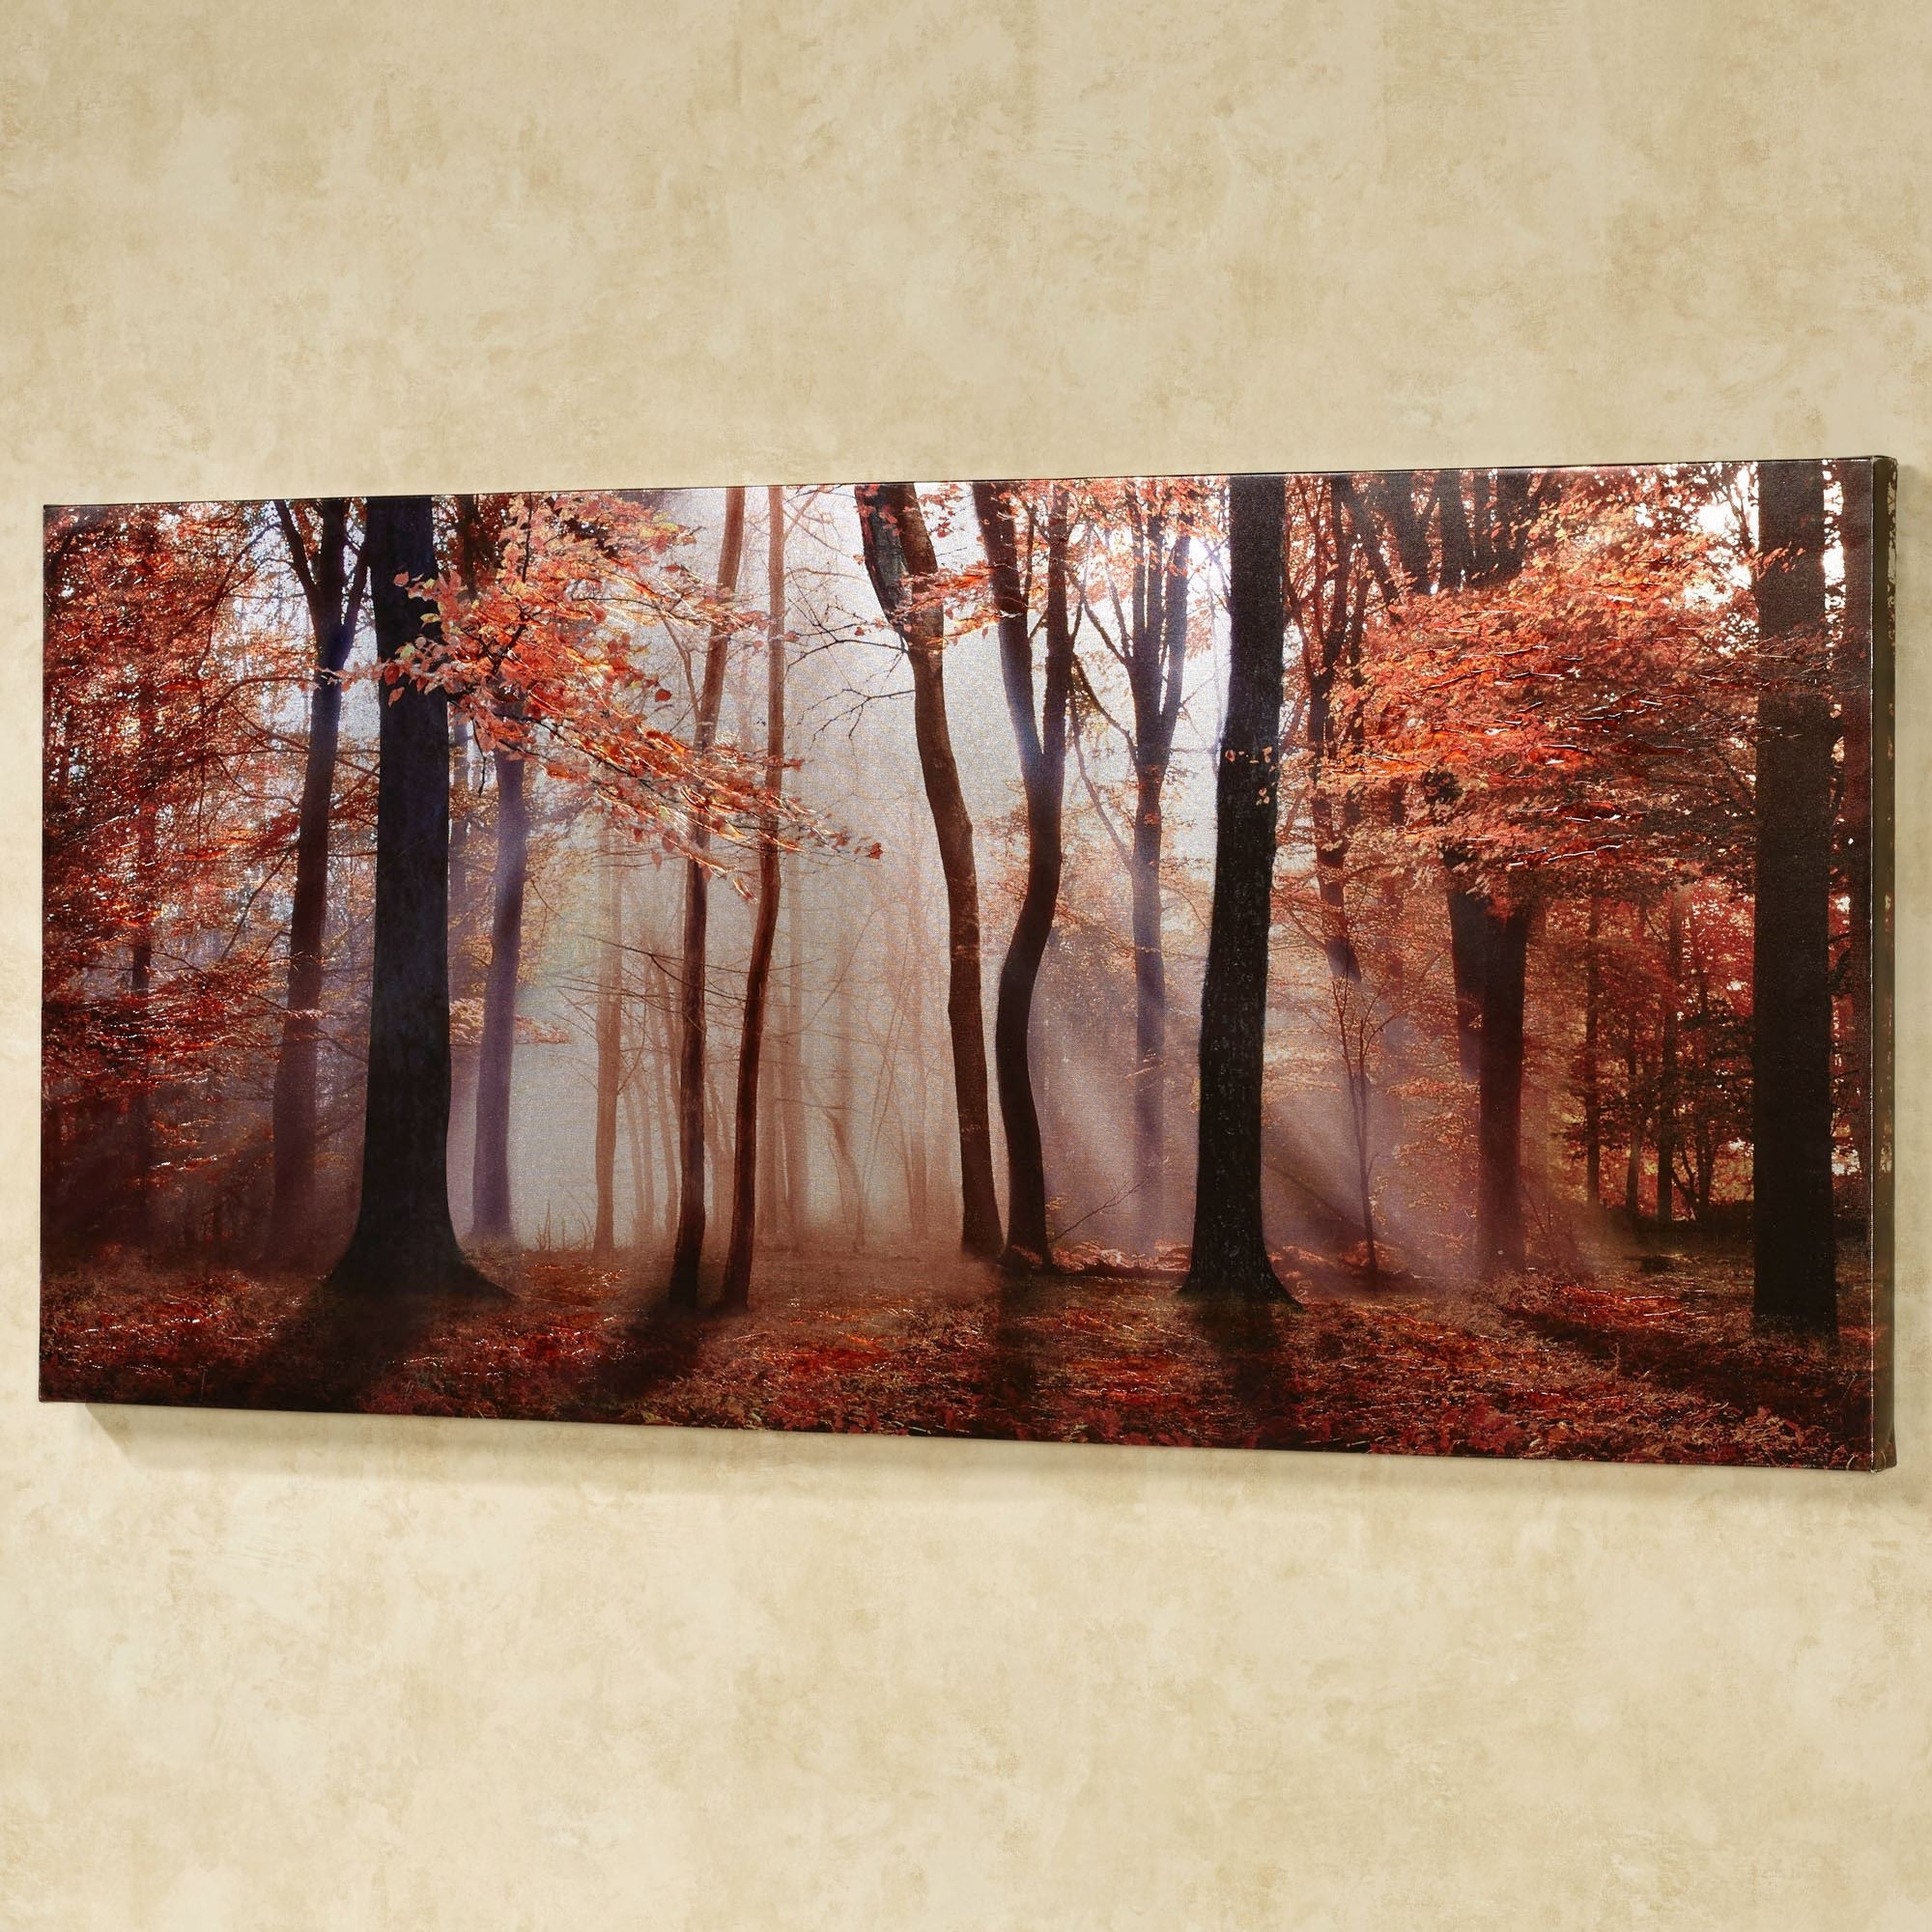 K Awesome Wall Canvas Art   Home Design And Wall Decoration Ideas For Wall Canvas Art (Photo 7 of 20)